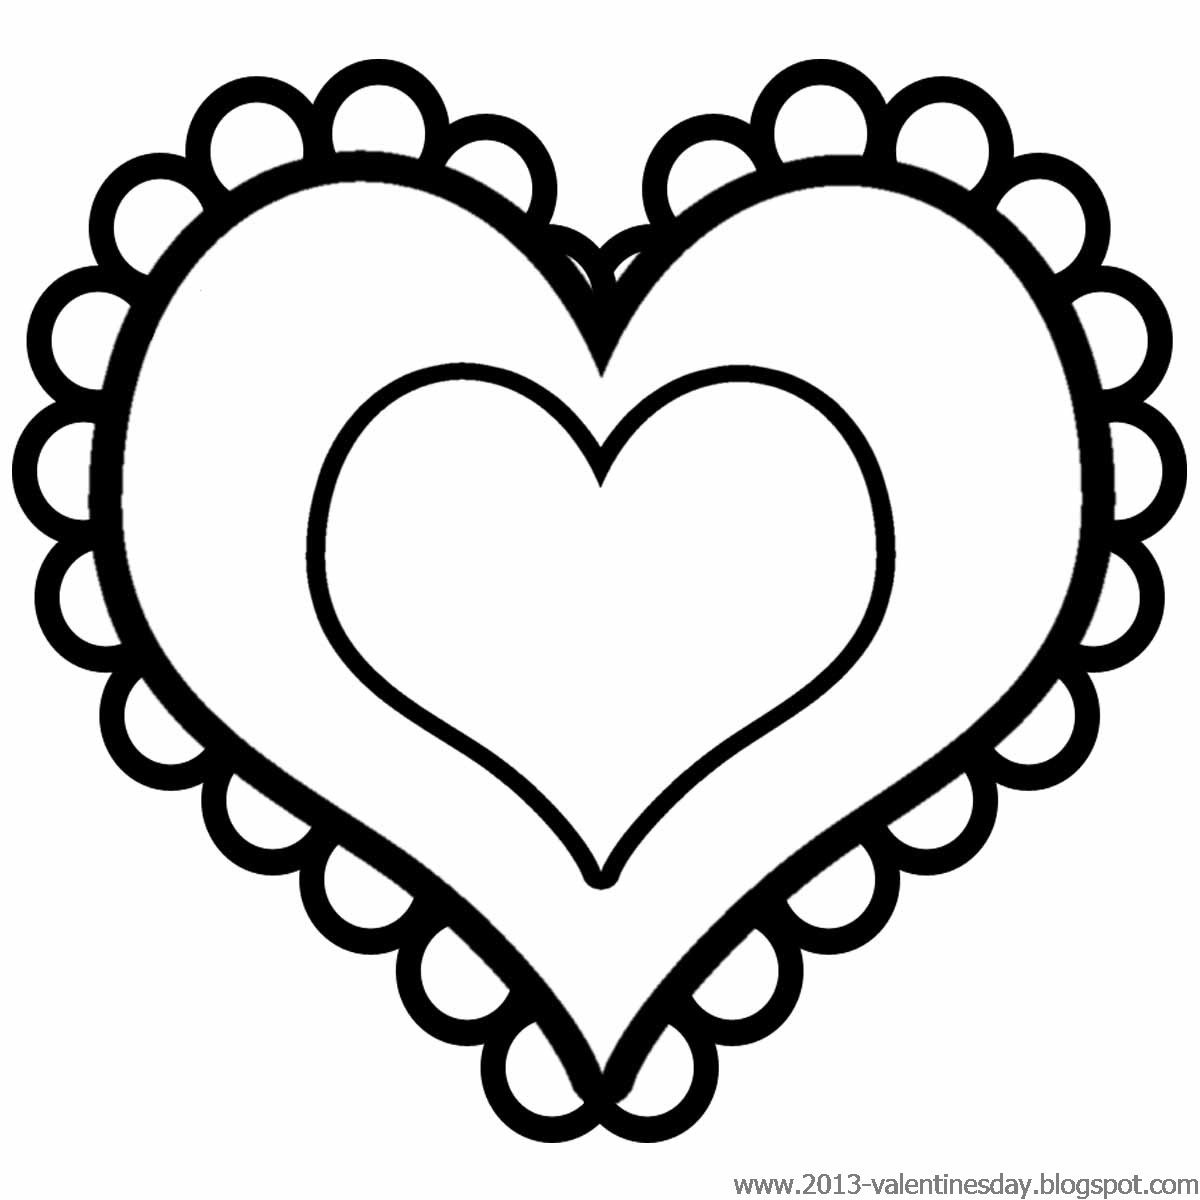 cute heart coloring pages valentines day clip art images and pictures valentine39s day cute coloring heart pages